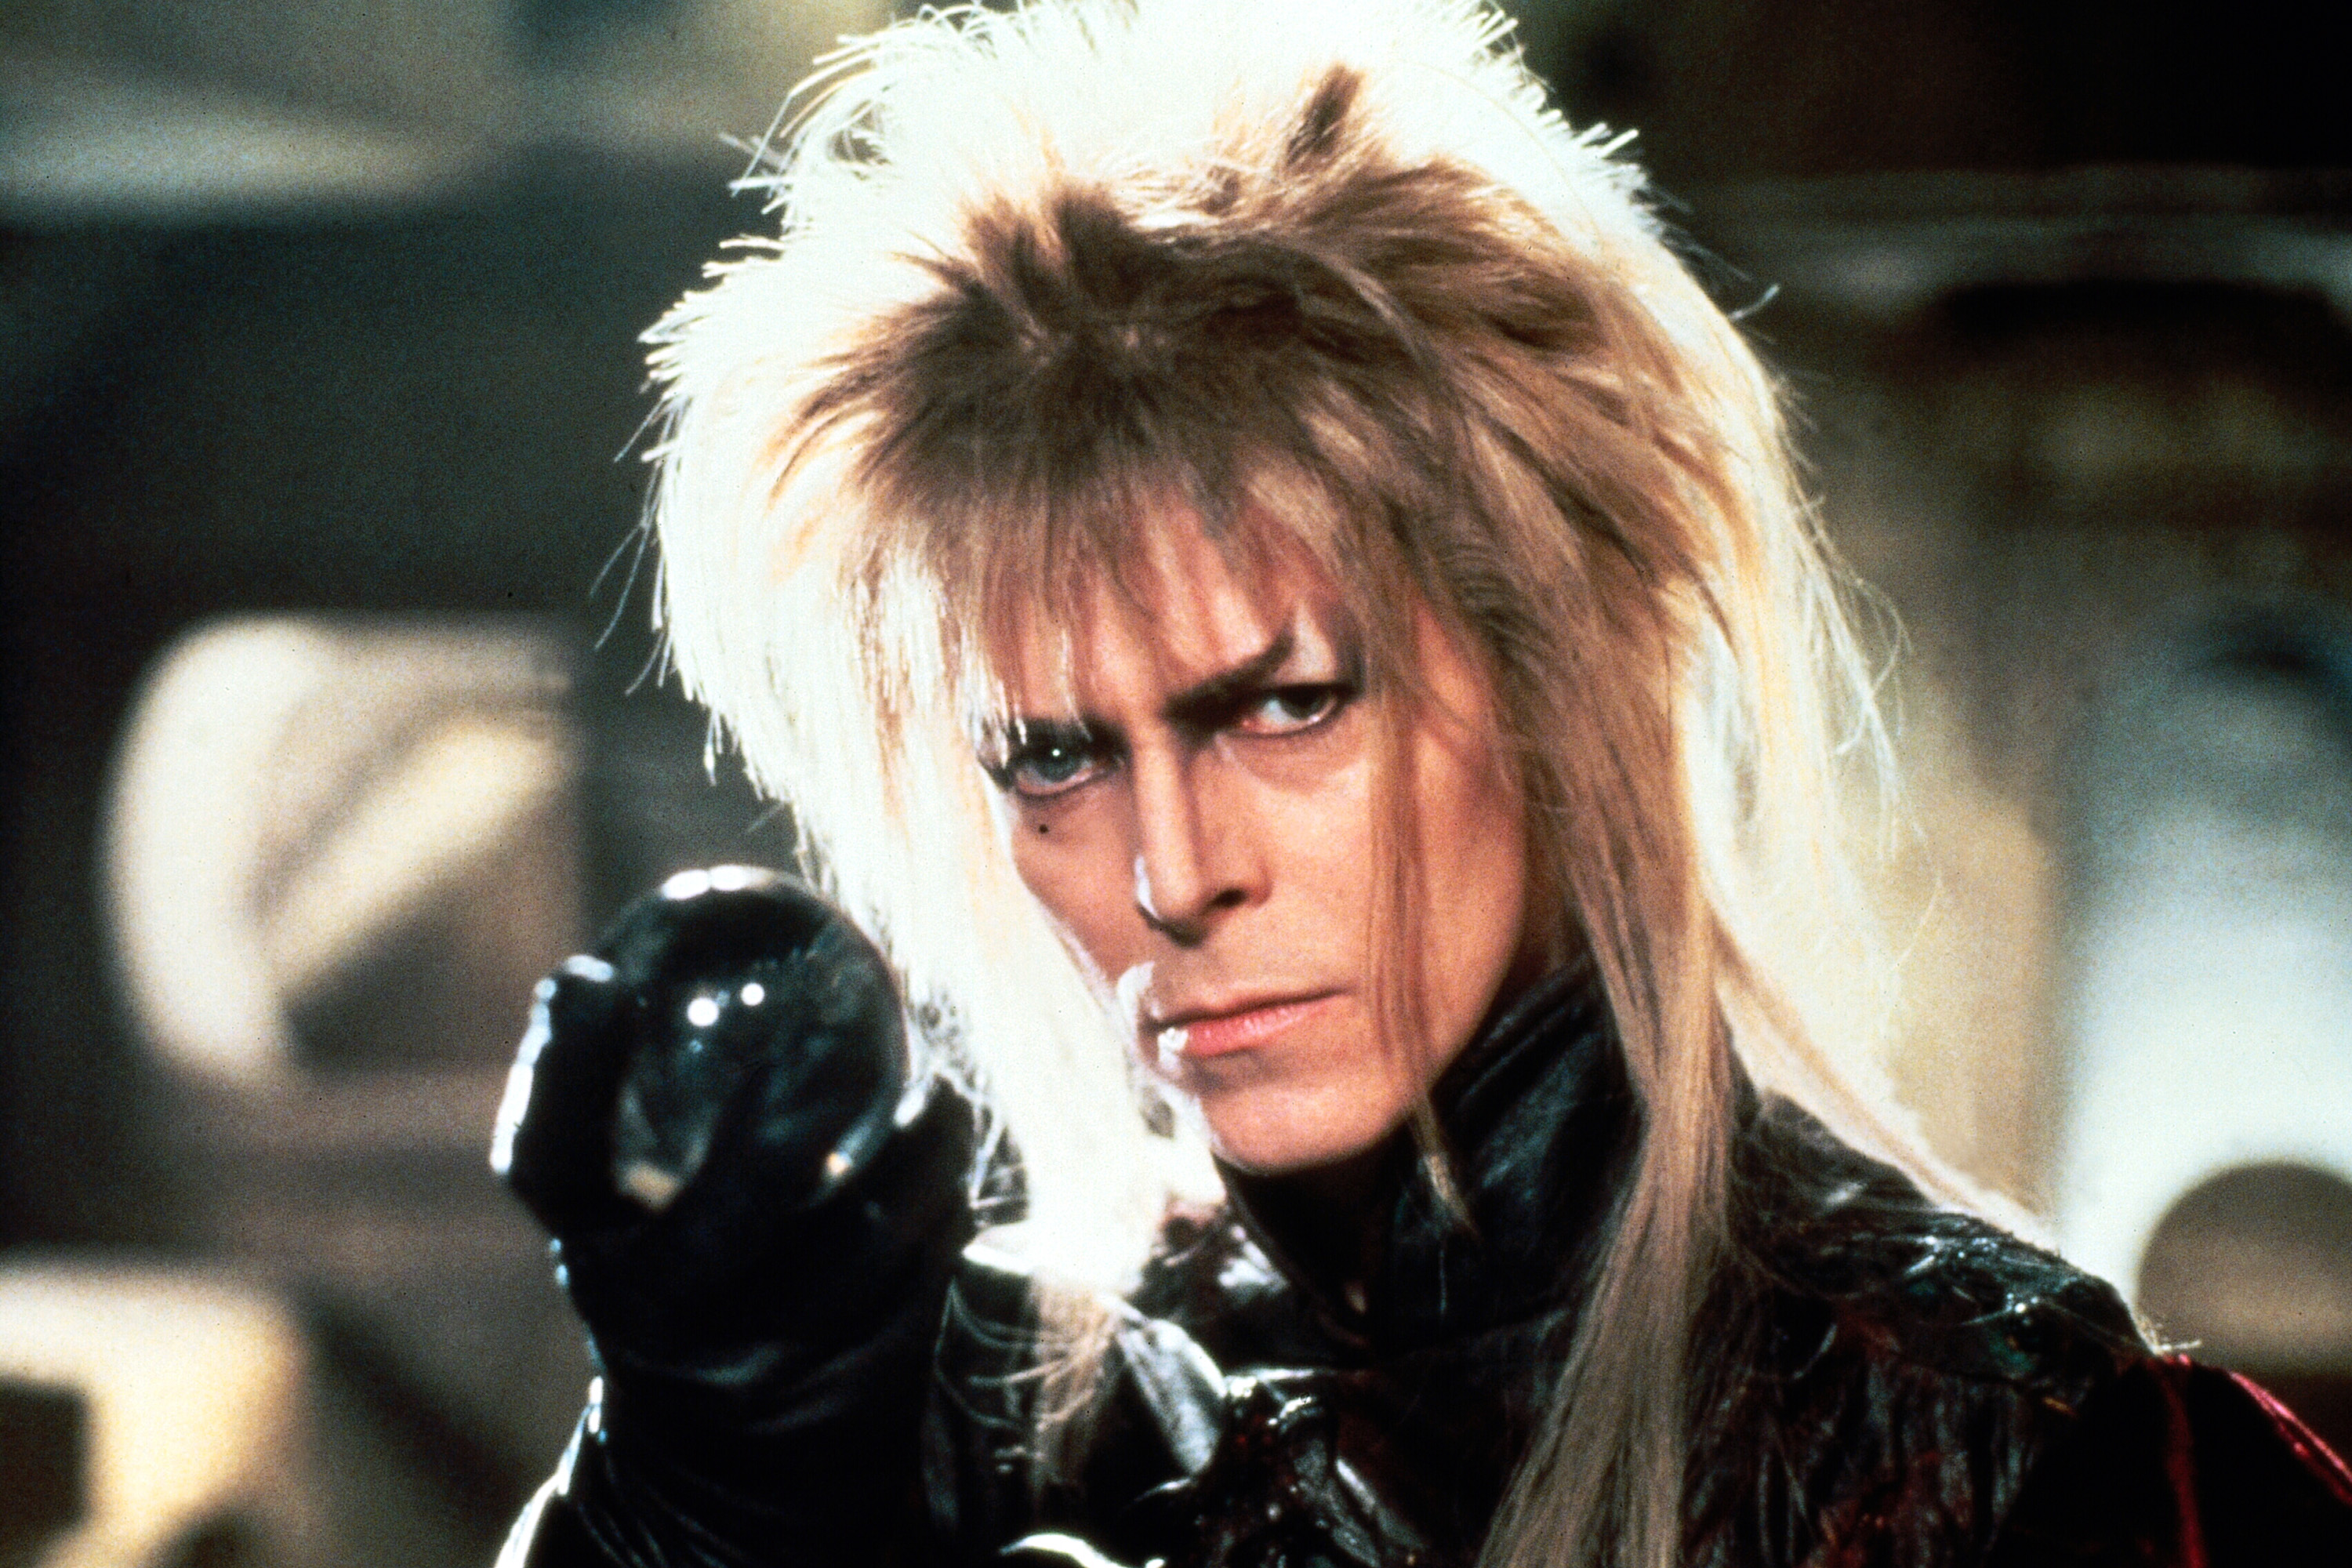 Bowie as Jareth in Labyrinth. Credit: TriStar Pictures